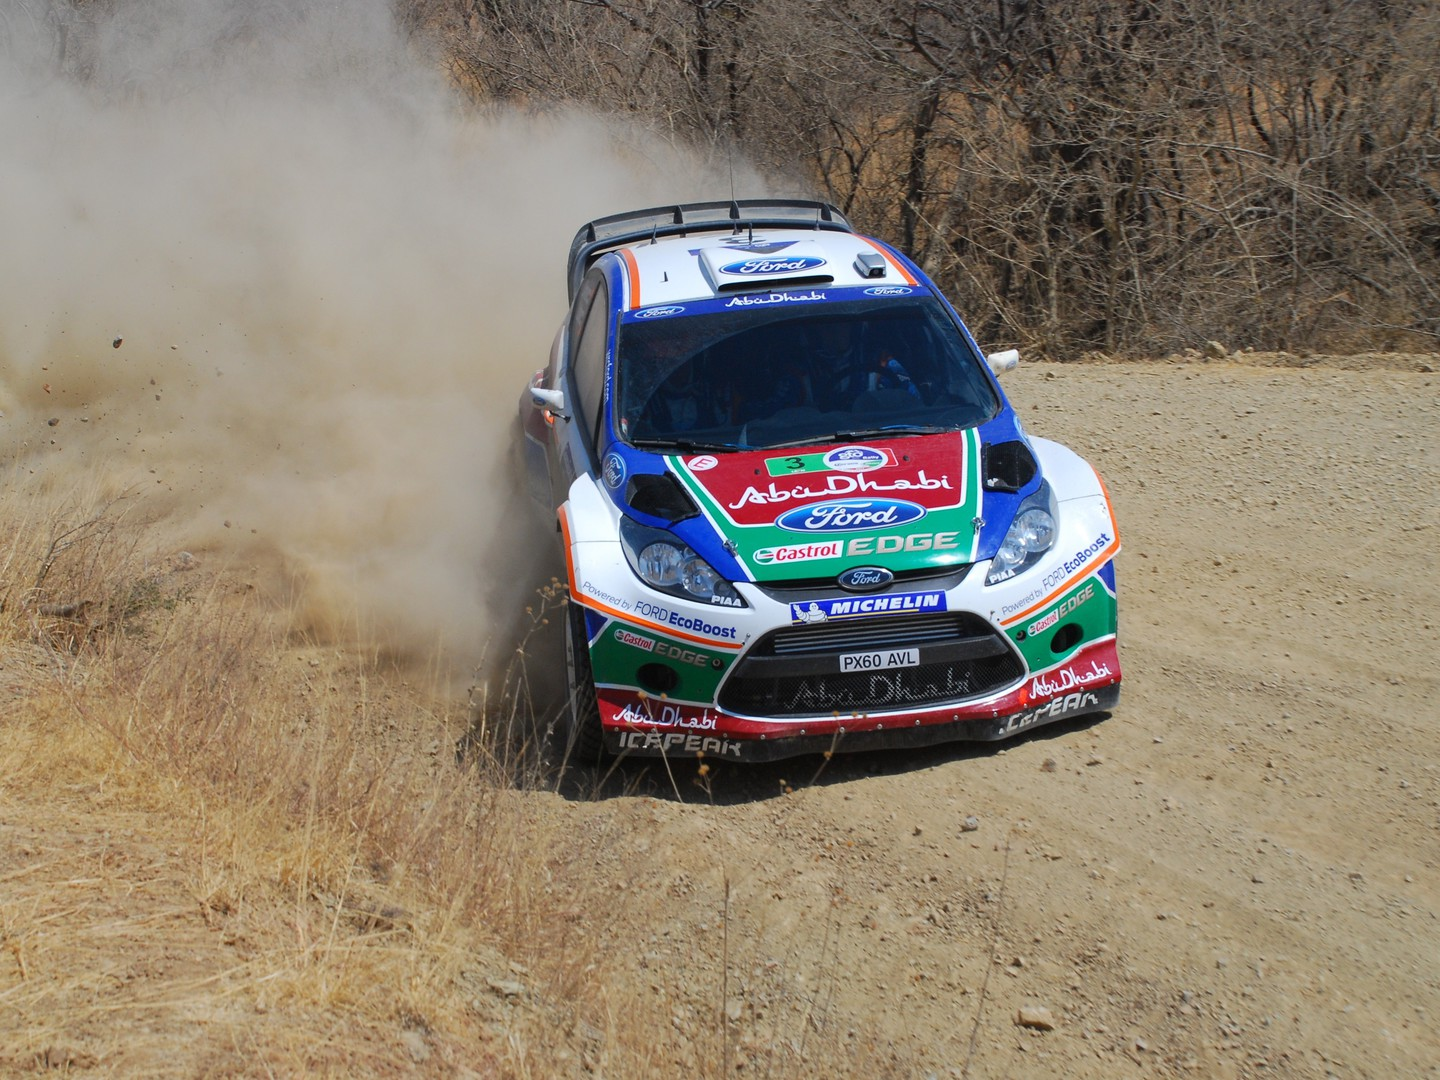 Ford Fiesta Wrc Mexico World Rally Championship Wallpaper